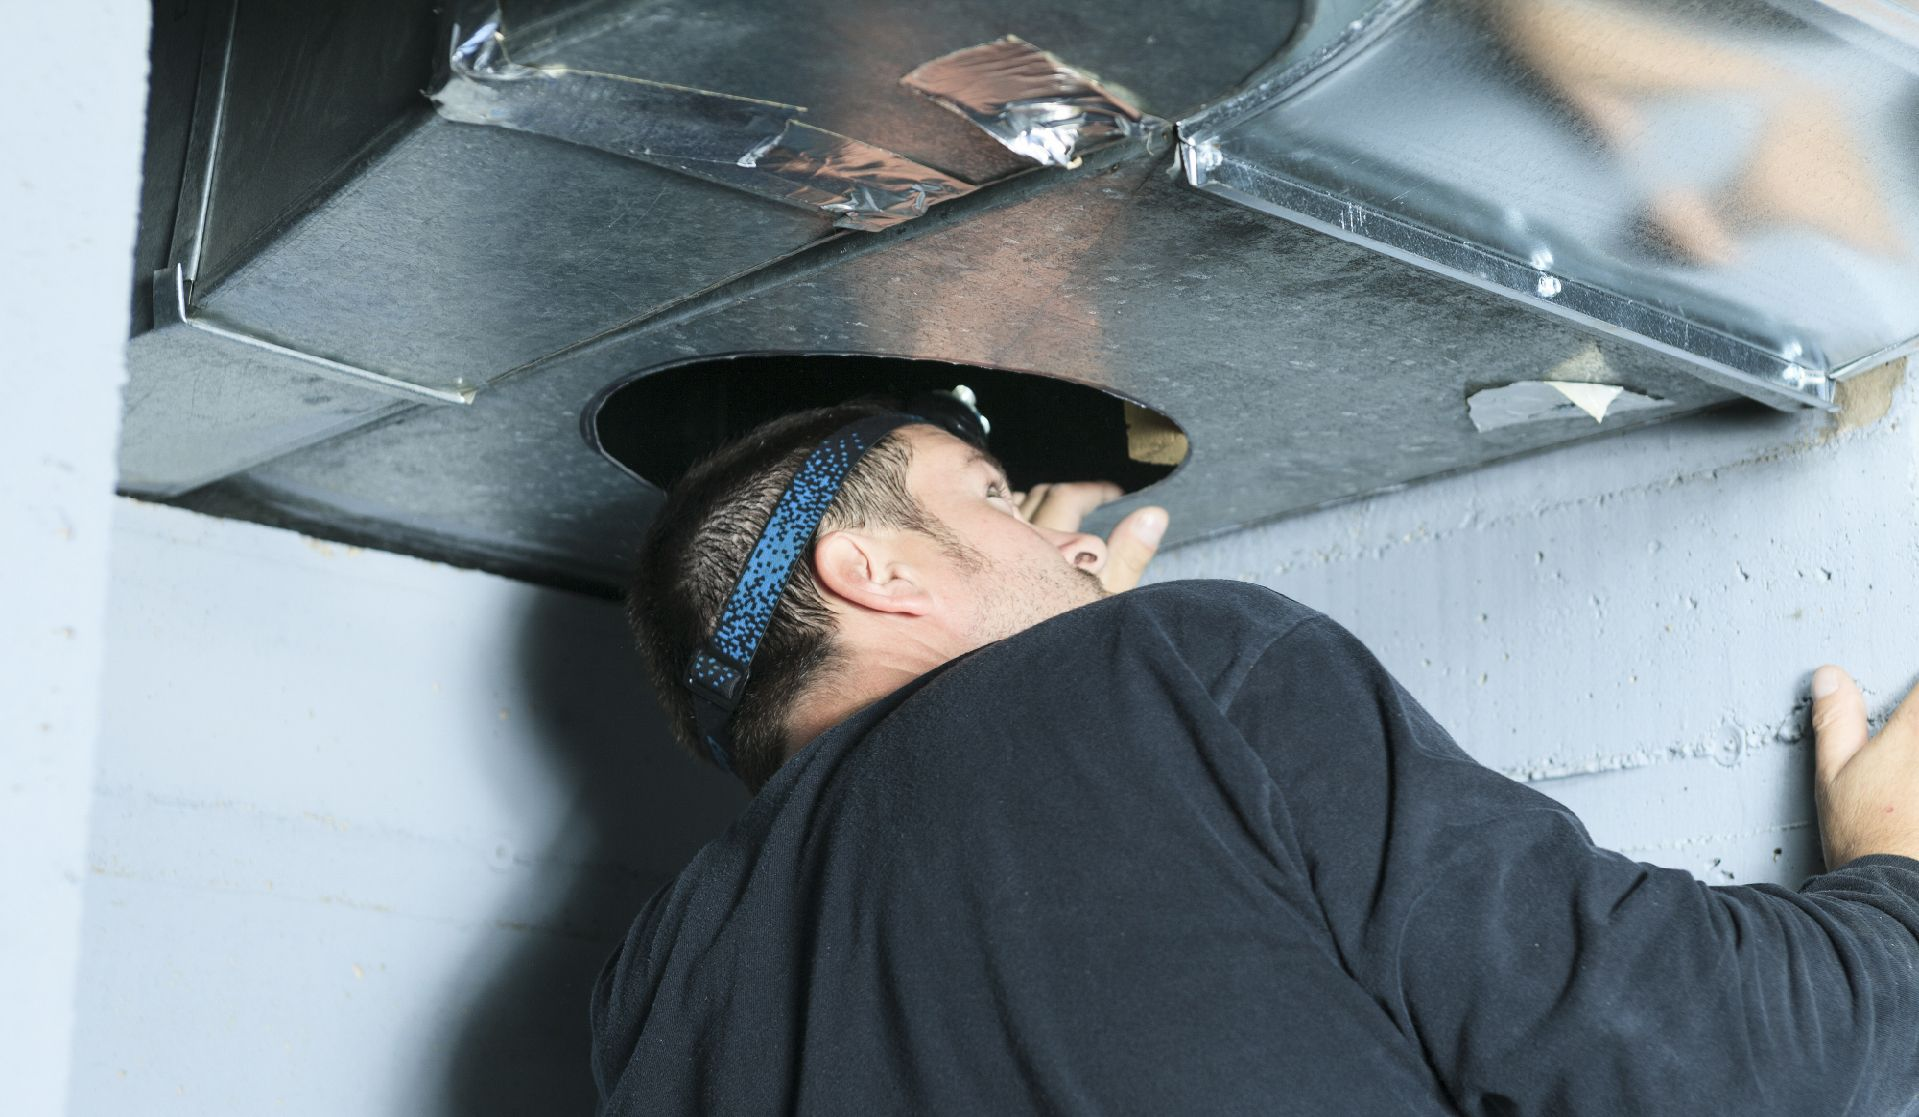 Air Duct Cleaning (With images) Air duct, Duct cleaning